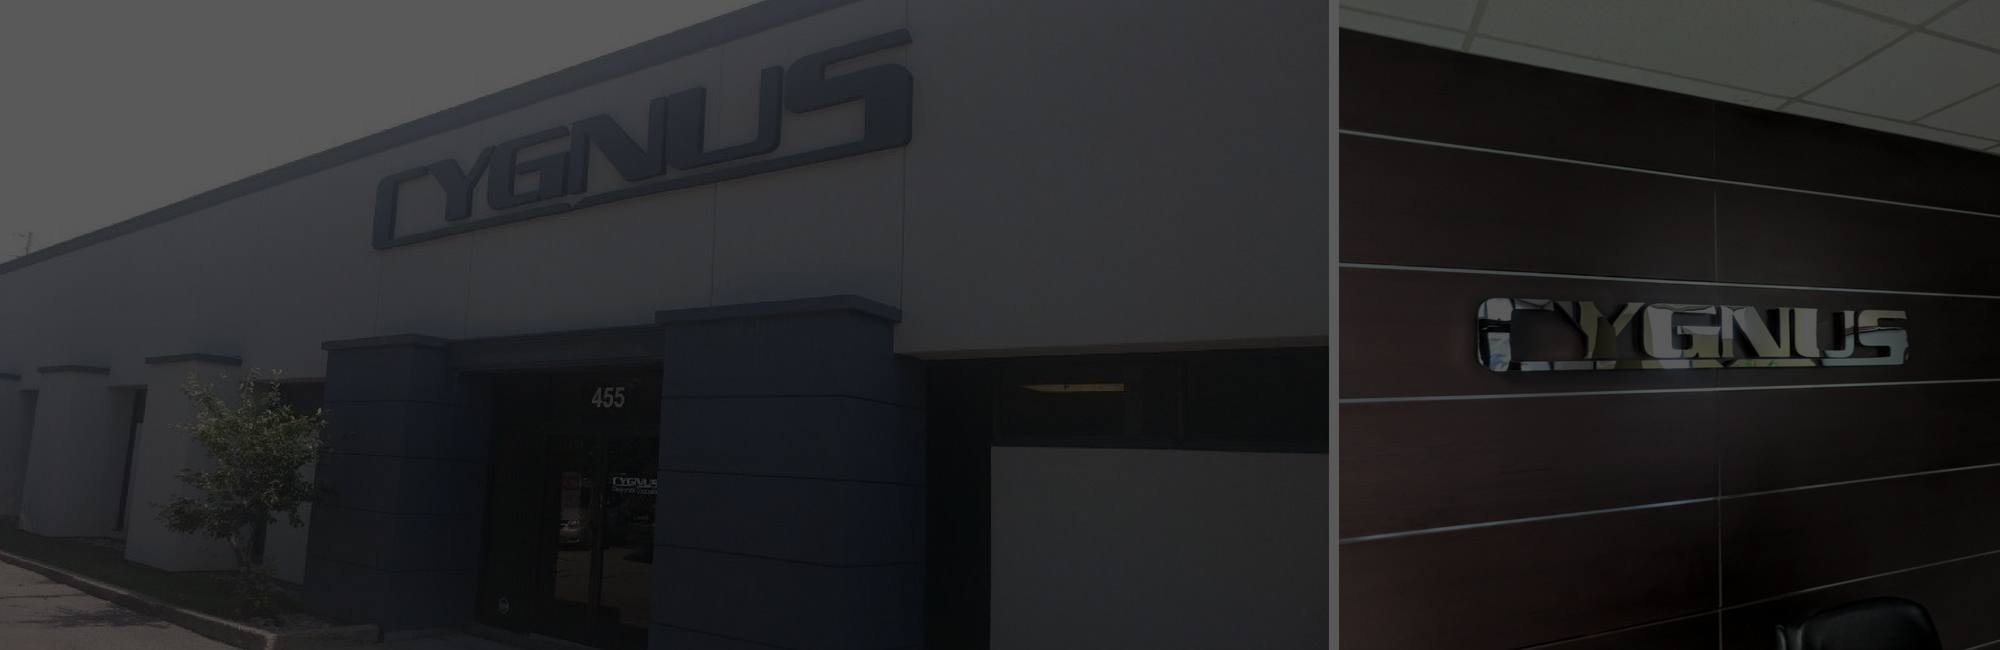 Electronics Manufacturer Cygnus Corporation